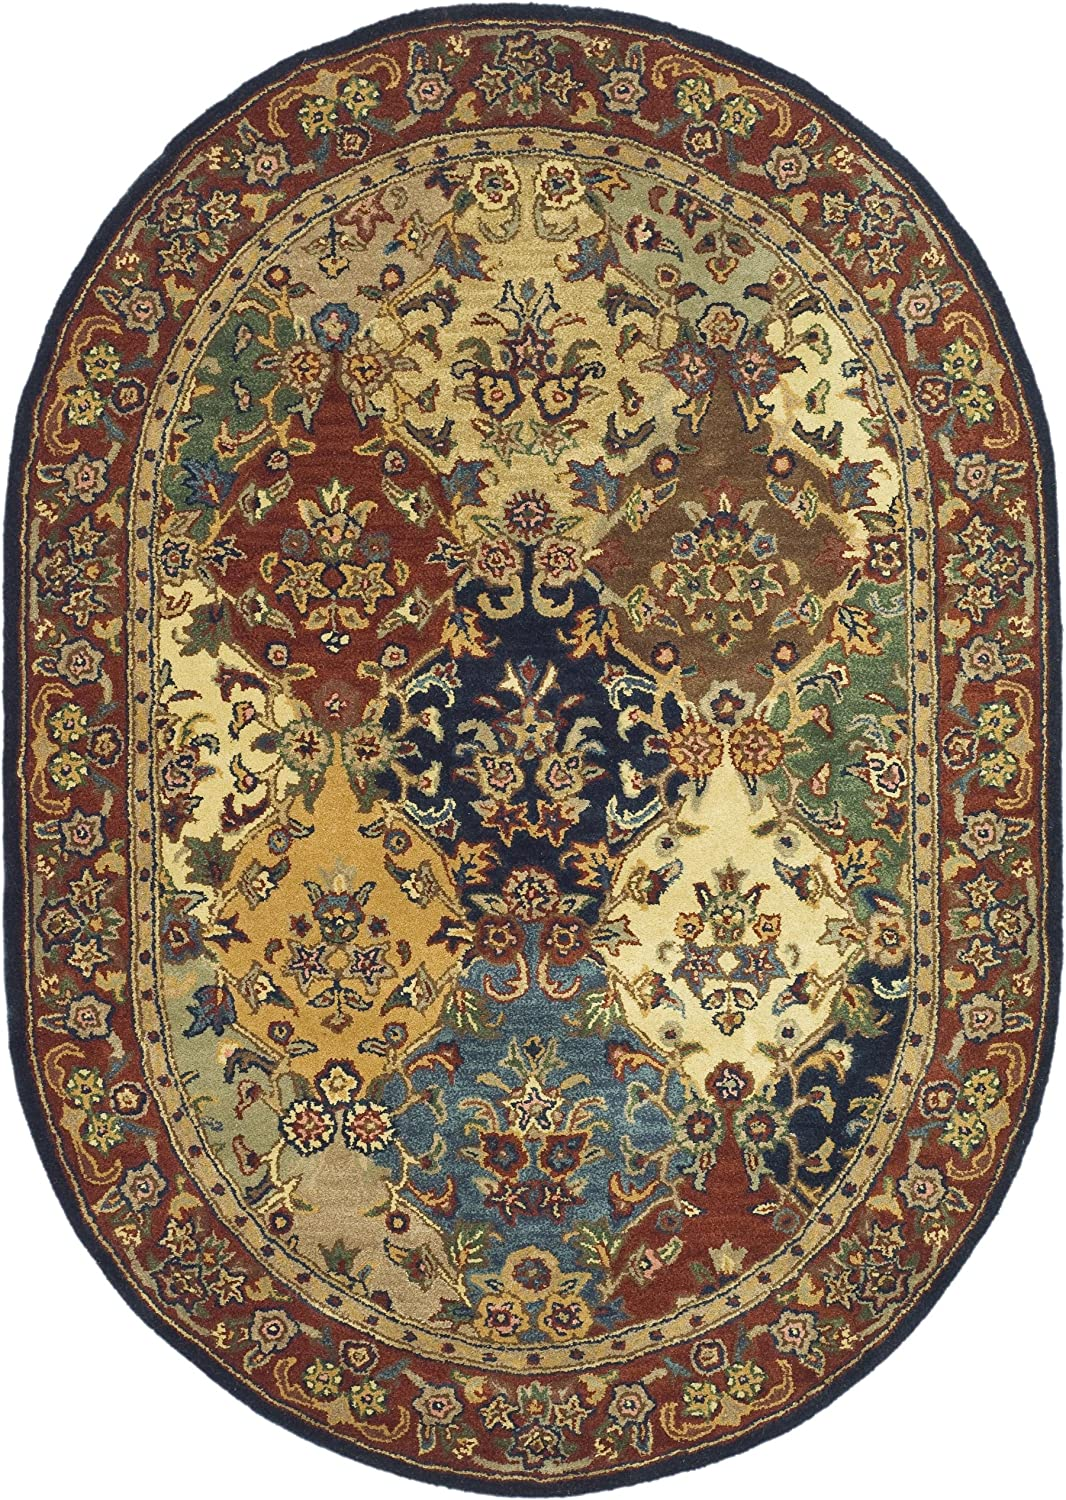 "Safavieh Heritage Collection HG911A Handmade Traditional Oriental Multi and Burgundy Wool Oval Area Rug (7'6"" x 9'6"" Oval)"